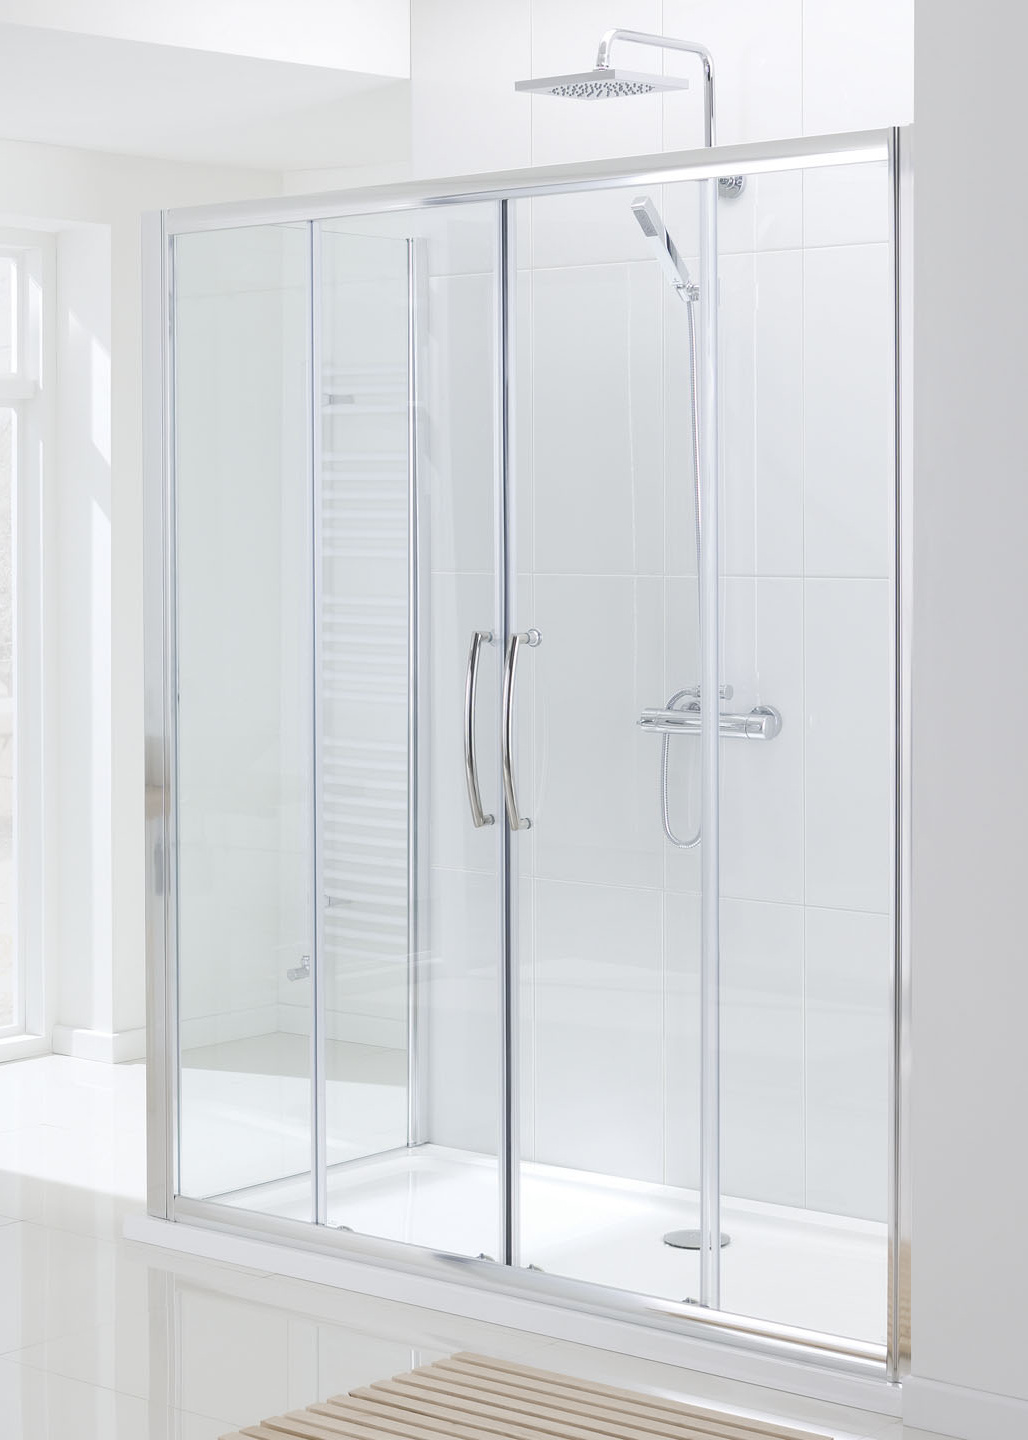 angle frameless galleries installations semi framed neo door shower king